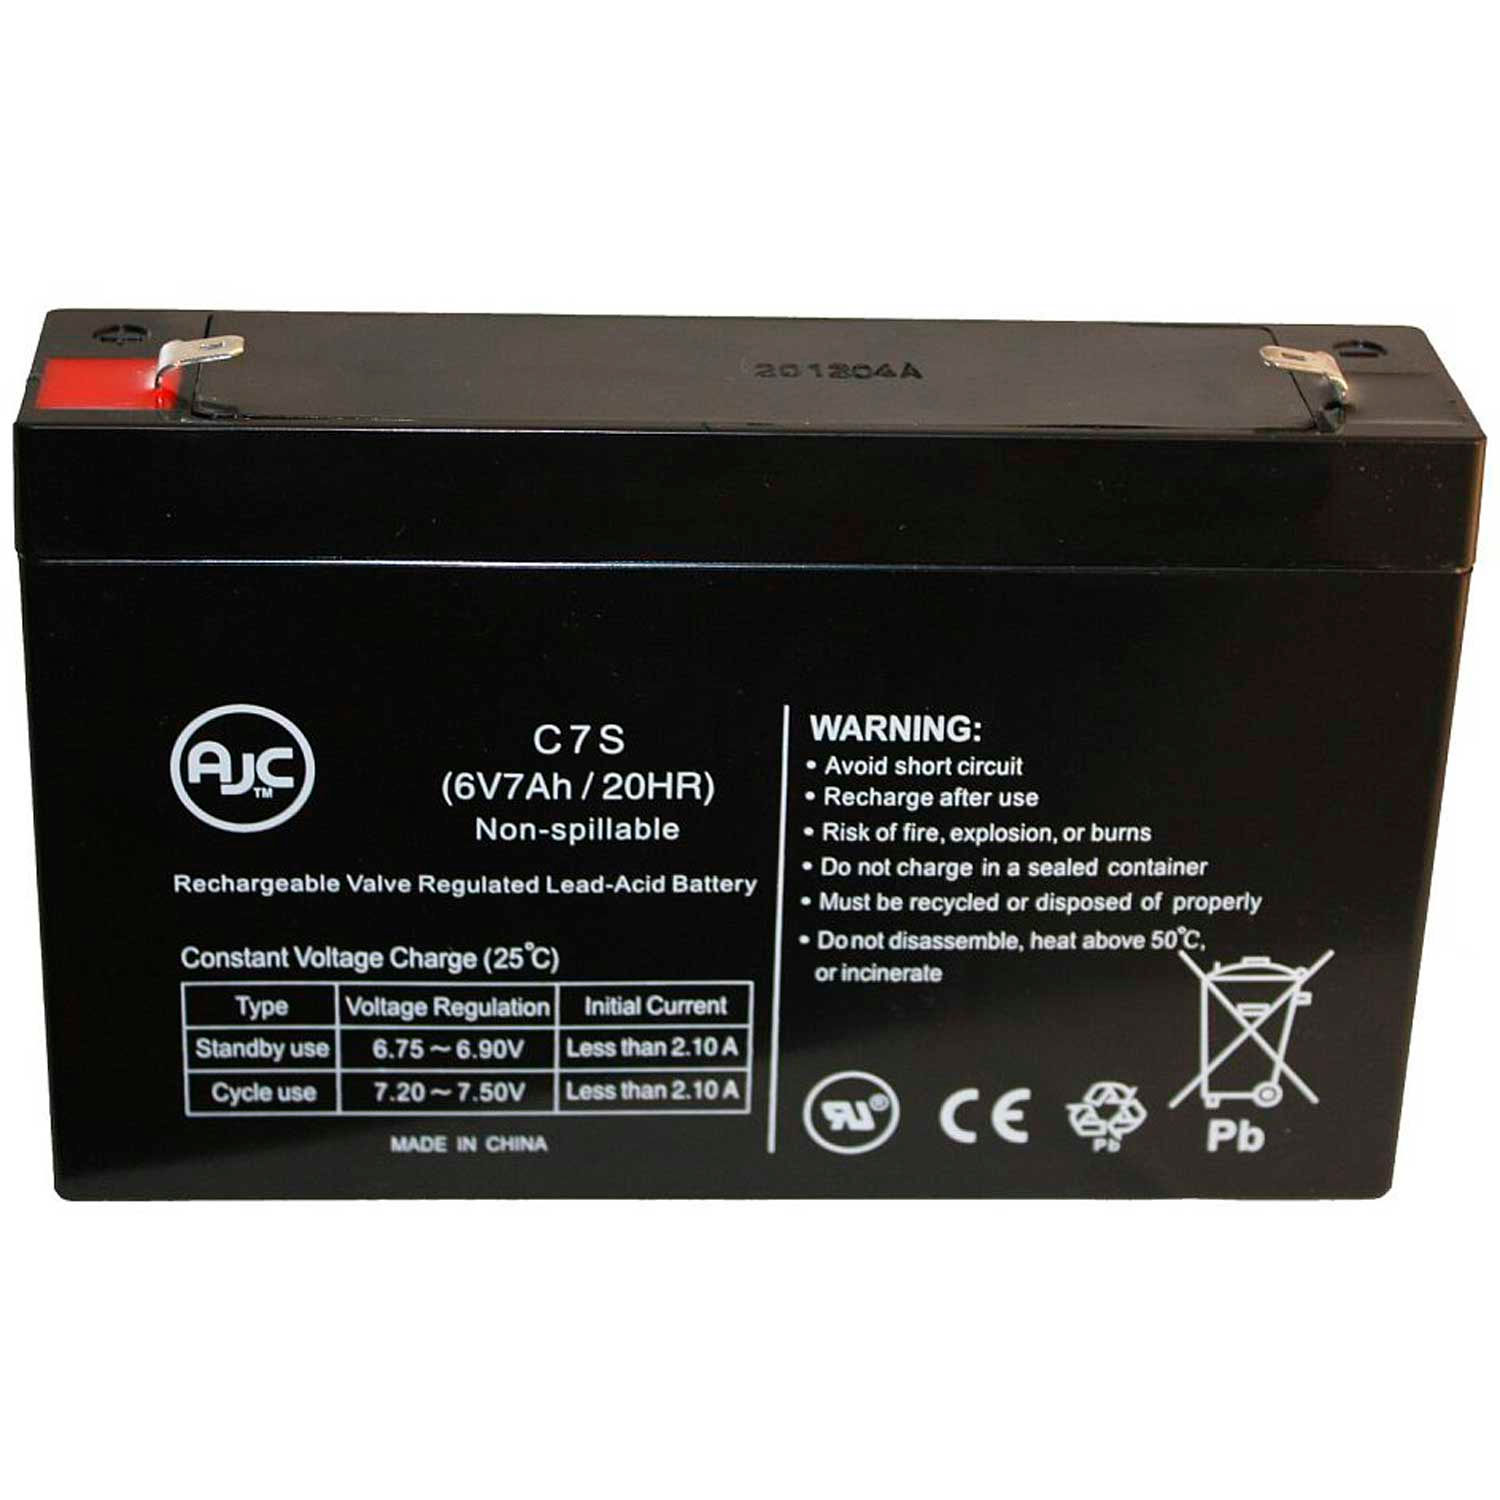 VRLA Battery Long Way LW-3FM7 Sealed Lead Acid AGM This is an AJC Brand Replacement